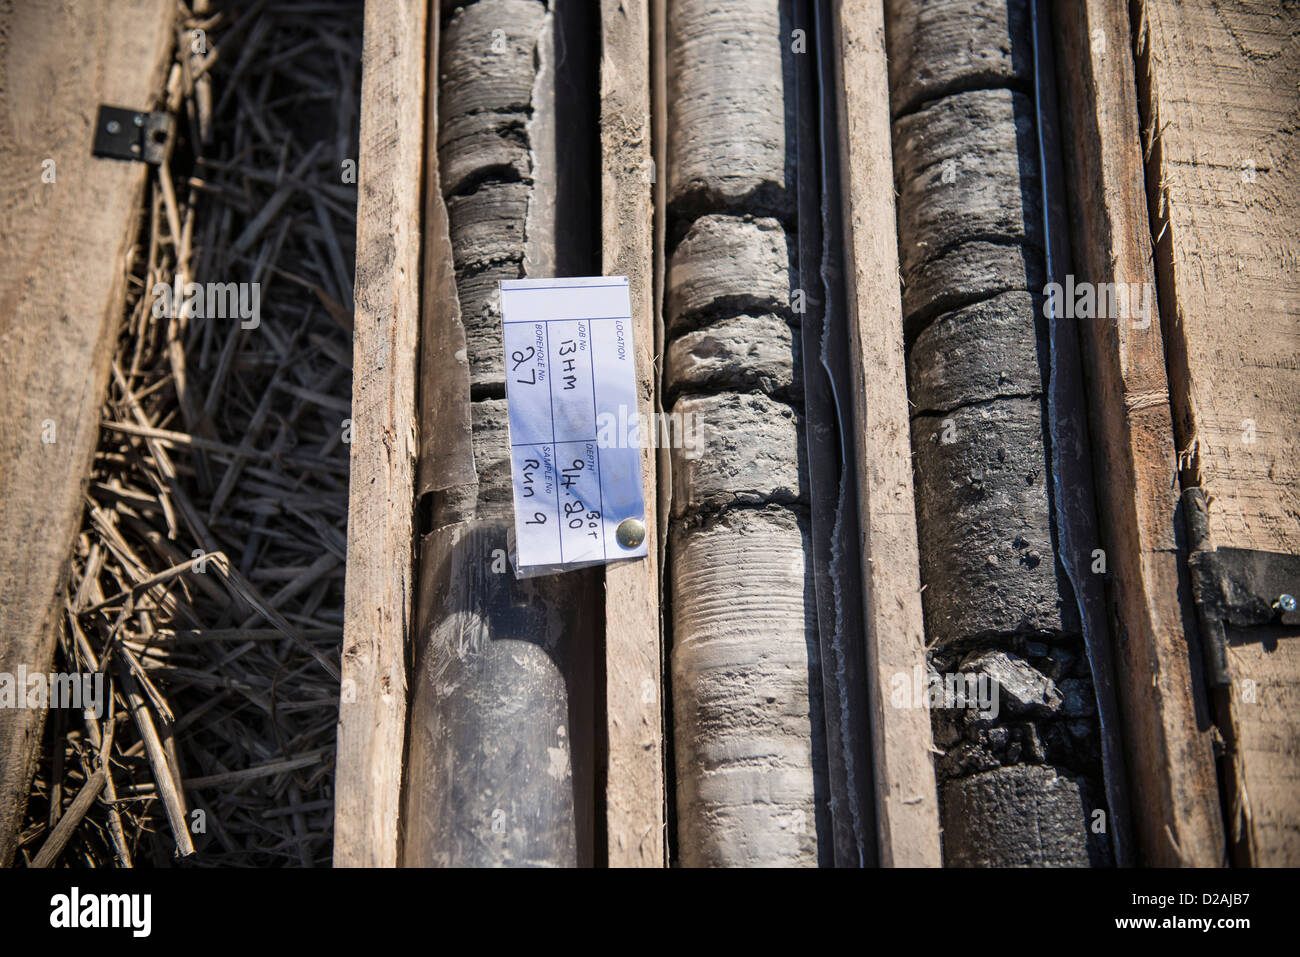 Drill core samples at coal mine - Stock Image